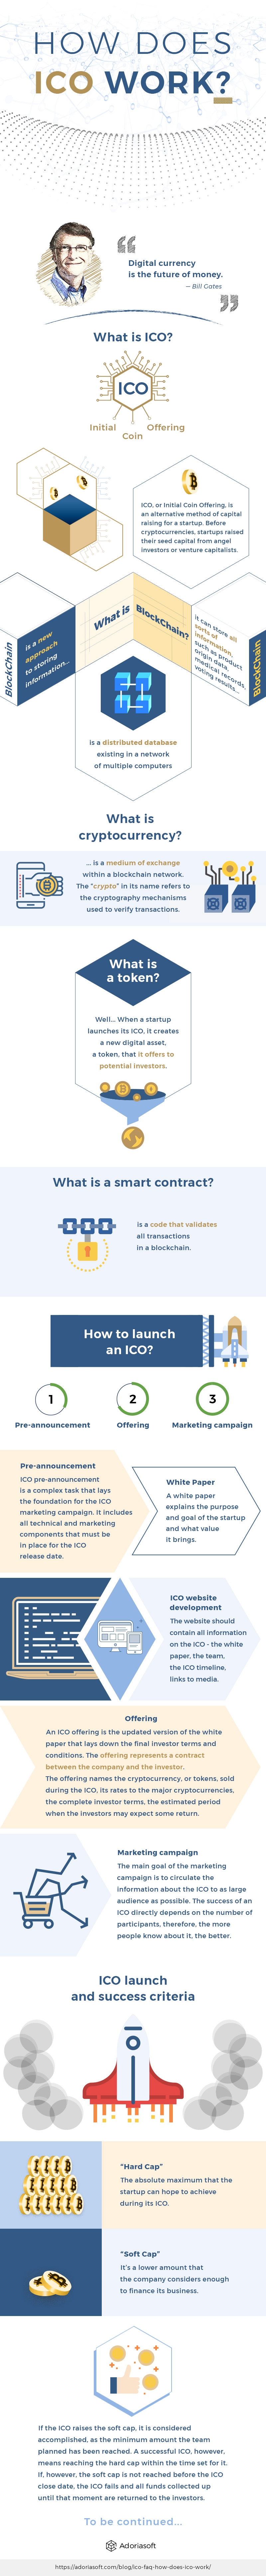 How Does ICO Work - FAQ About ICO